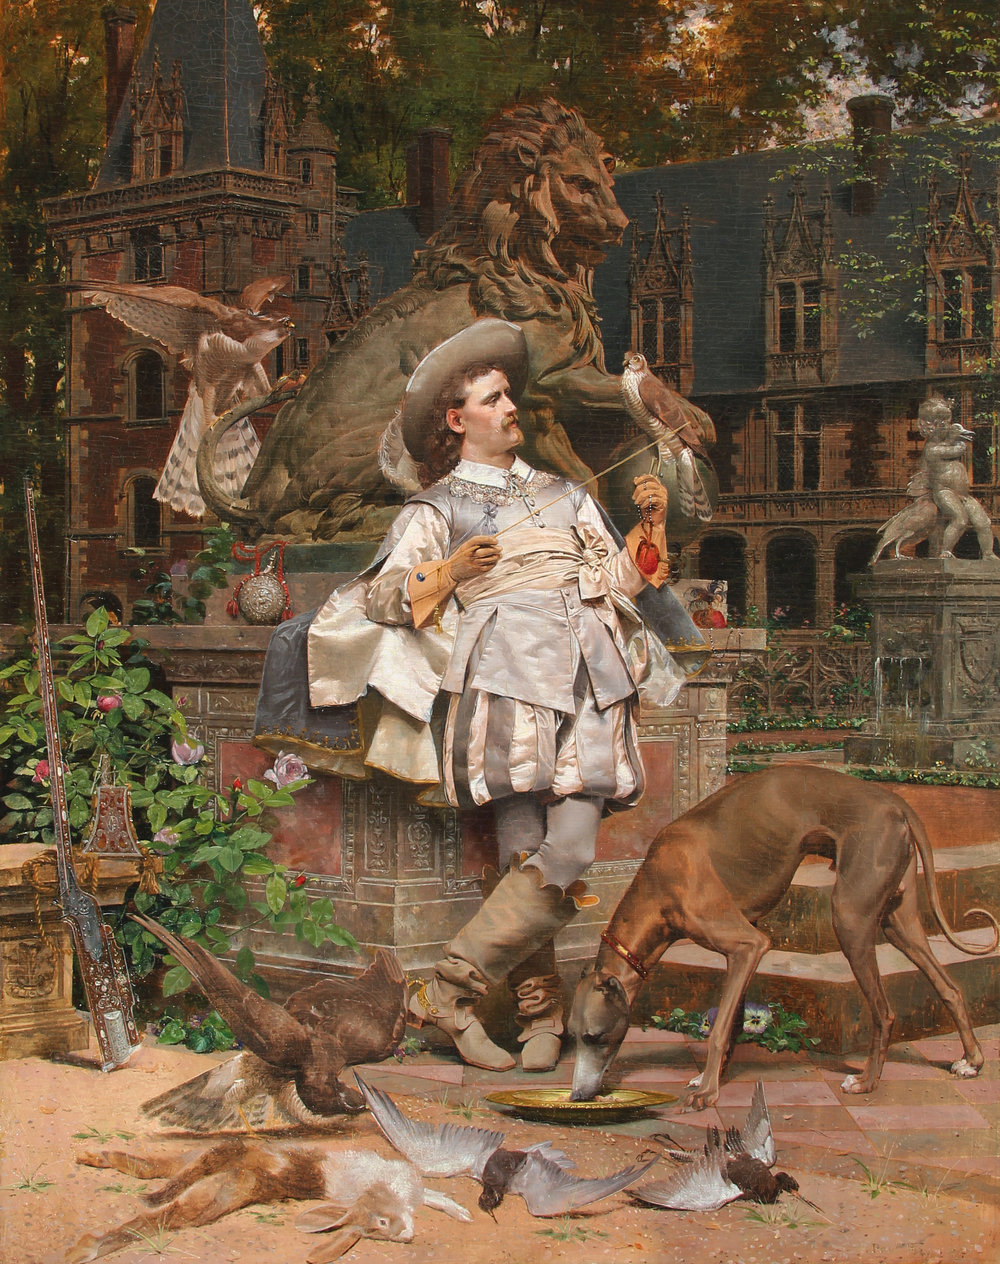 PAUL VIRY The Falconer Oil on panel 21 x 17 inches (53.3 x 43.2 cm) $18,000 Click here for more information